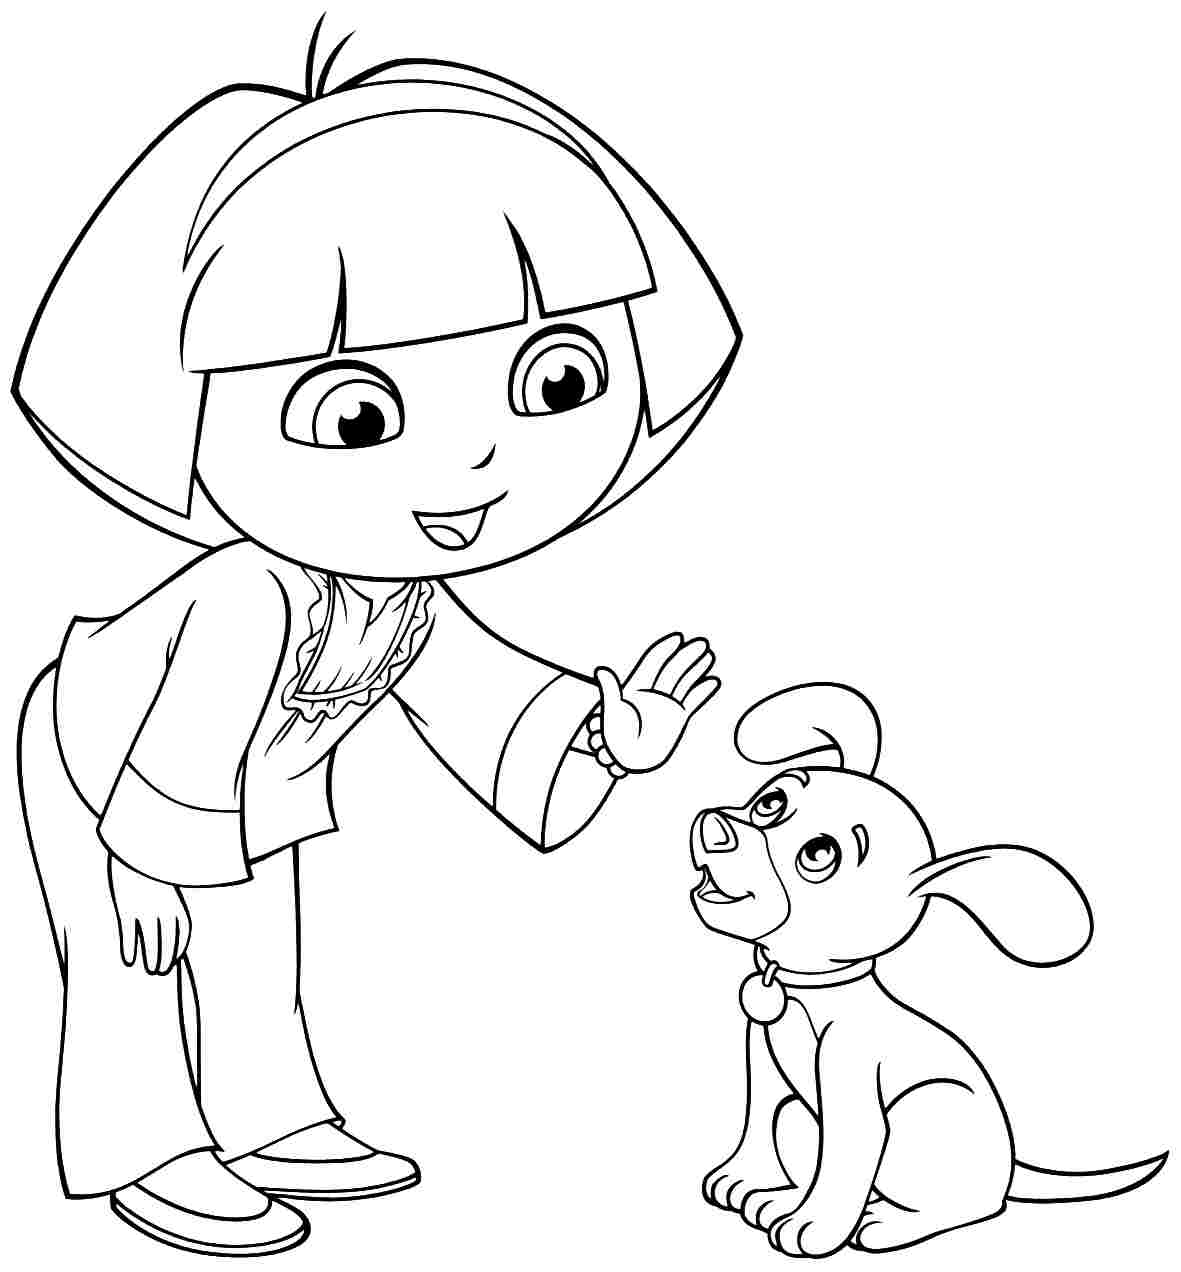 image cartoon dora the explorer and friends coloring pages for